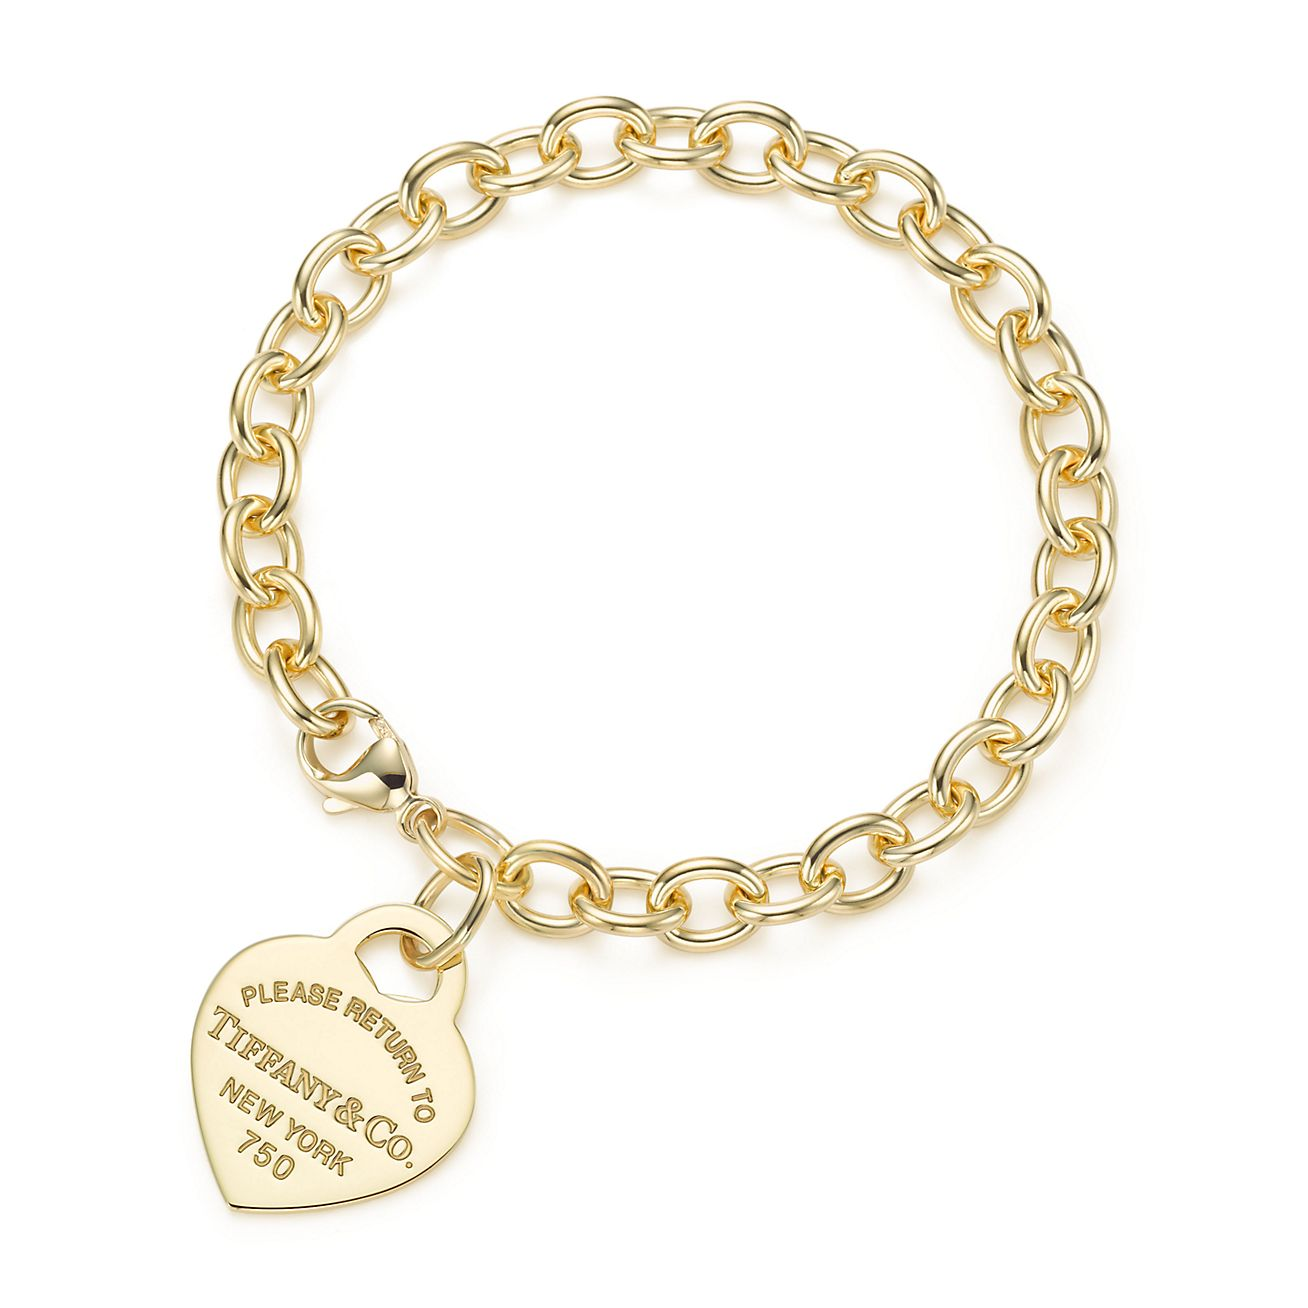 Return to Tiffany medium heart tag in 18k gold on a bracelet large